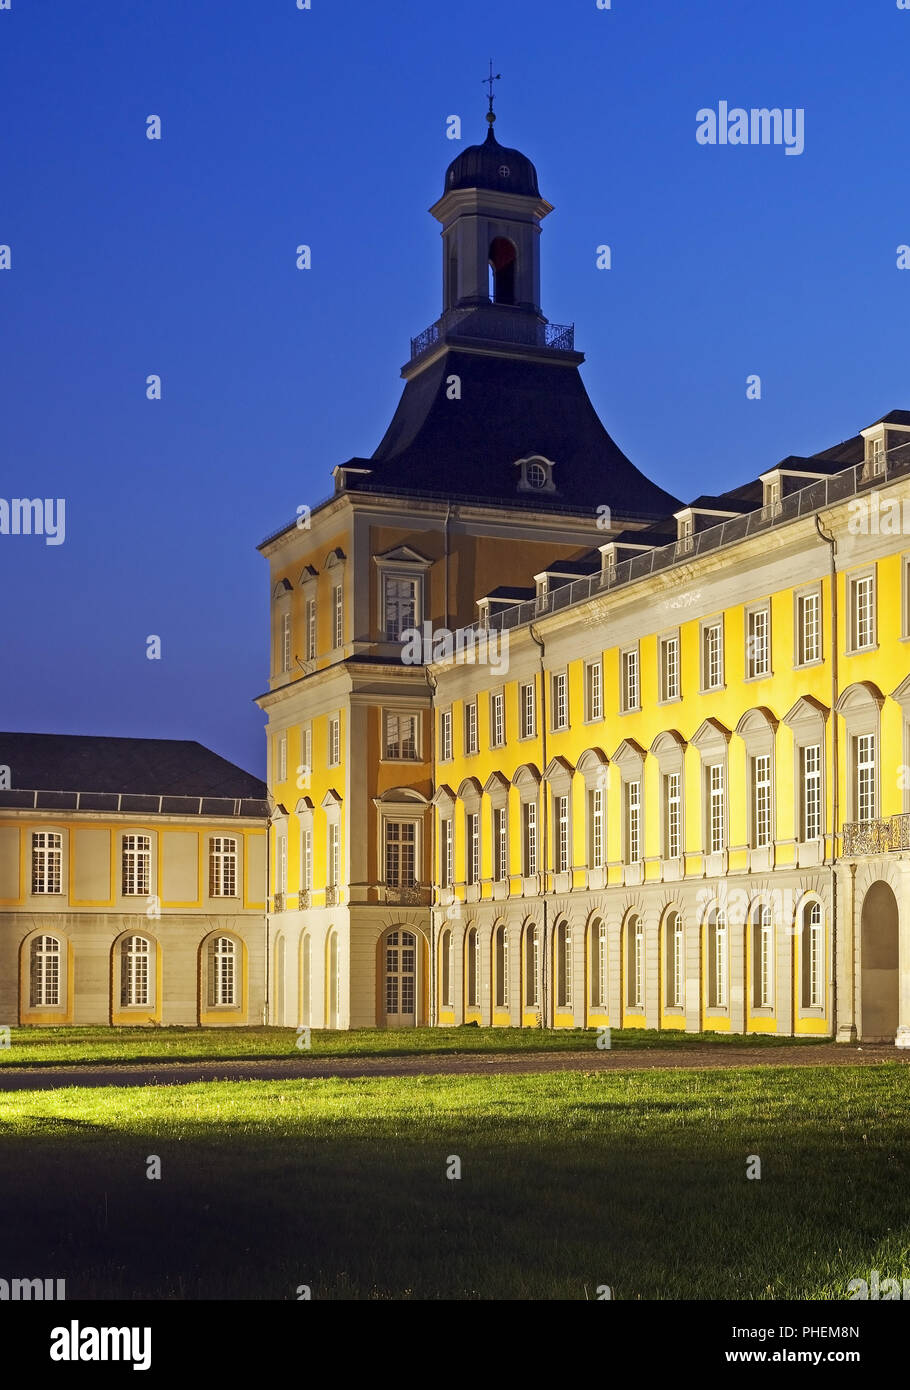 Electoral Palace, the main building of the university, Bonn, North Rhine-Westphalia, Germany, Europe Stock Photo